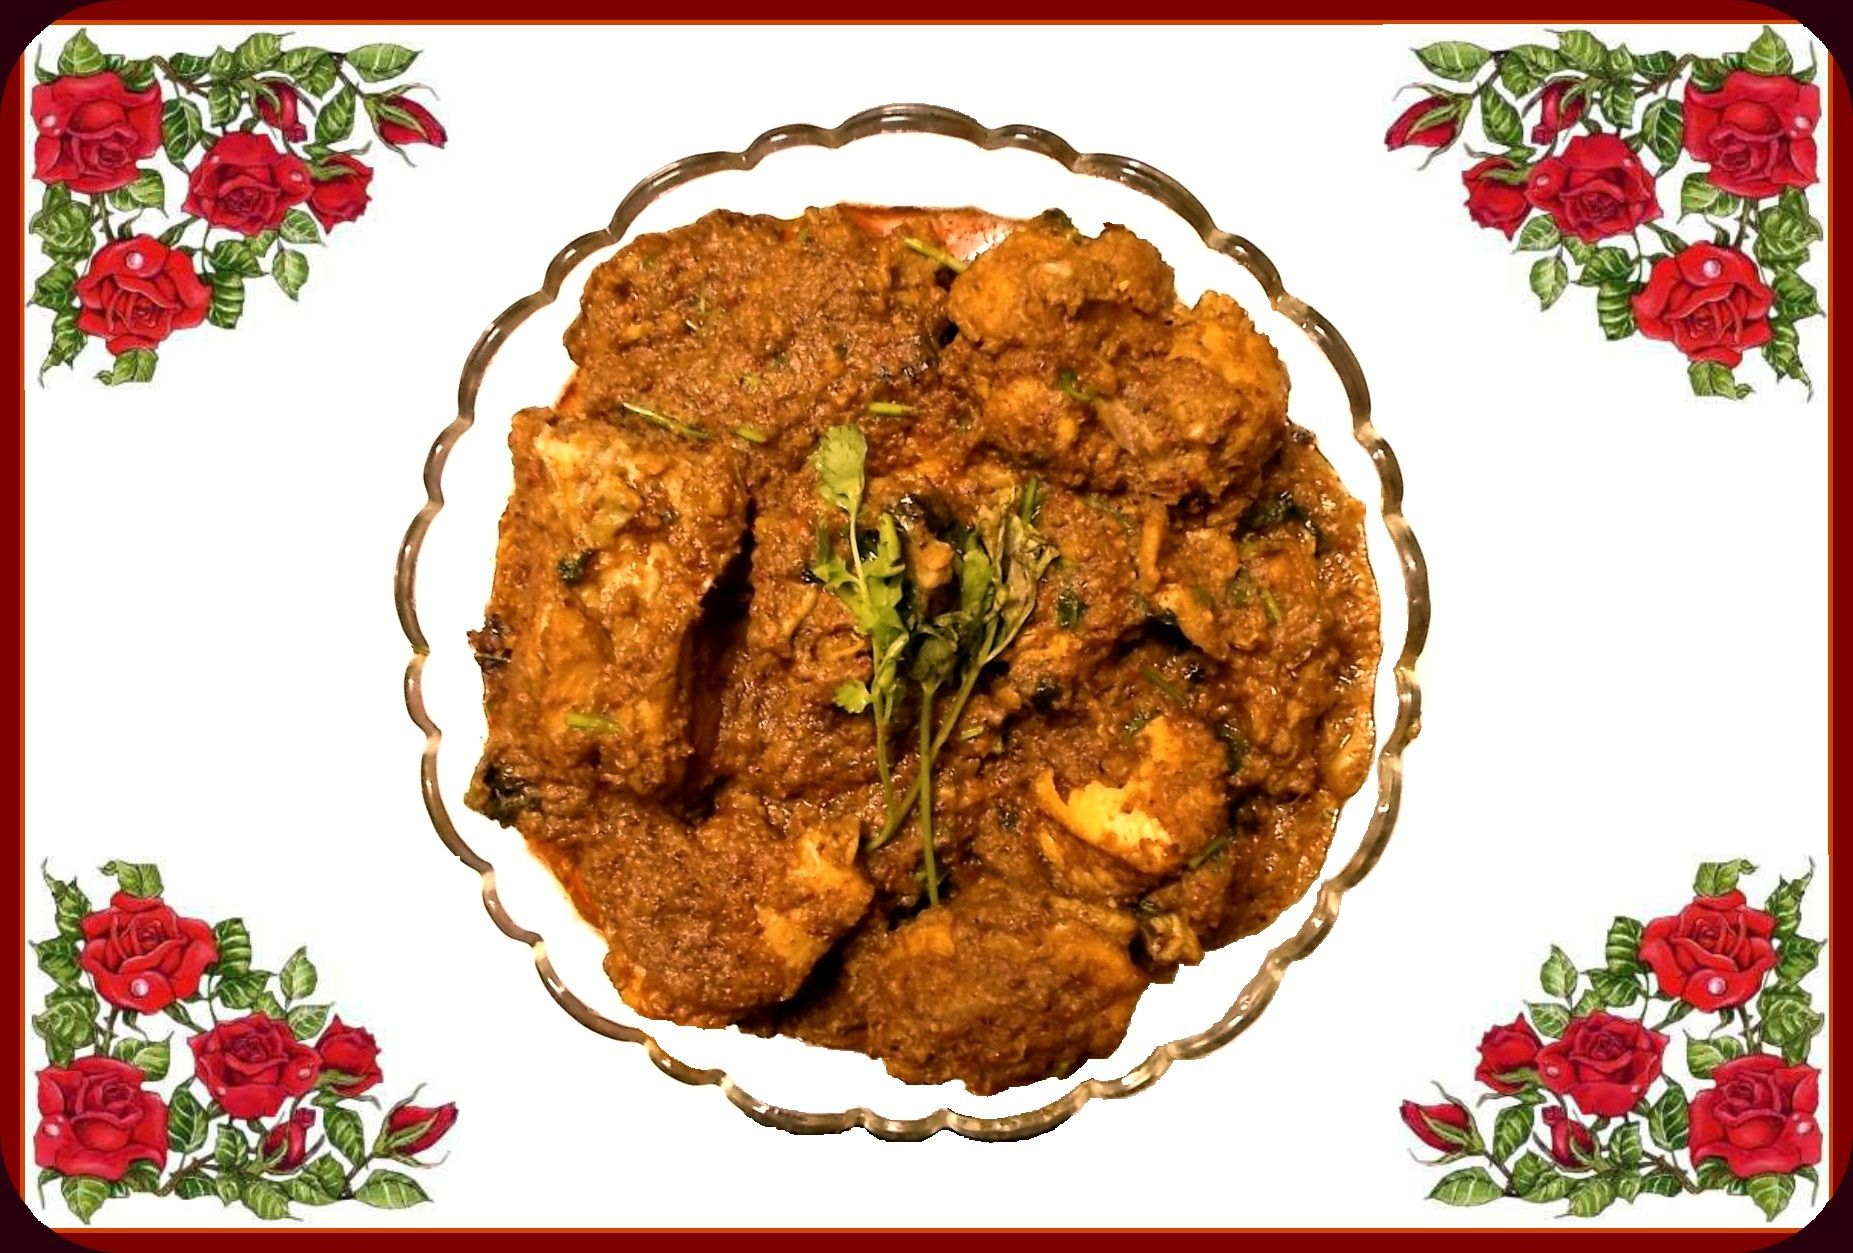 Kolhapuri chicken recipe from sanjeev kapoor khazana httpswww kolhapuri chicken recipe from sanjeev kapoor khazana httpsyoutube forumfinder Images